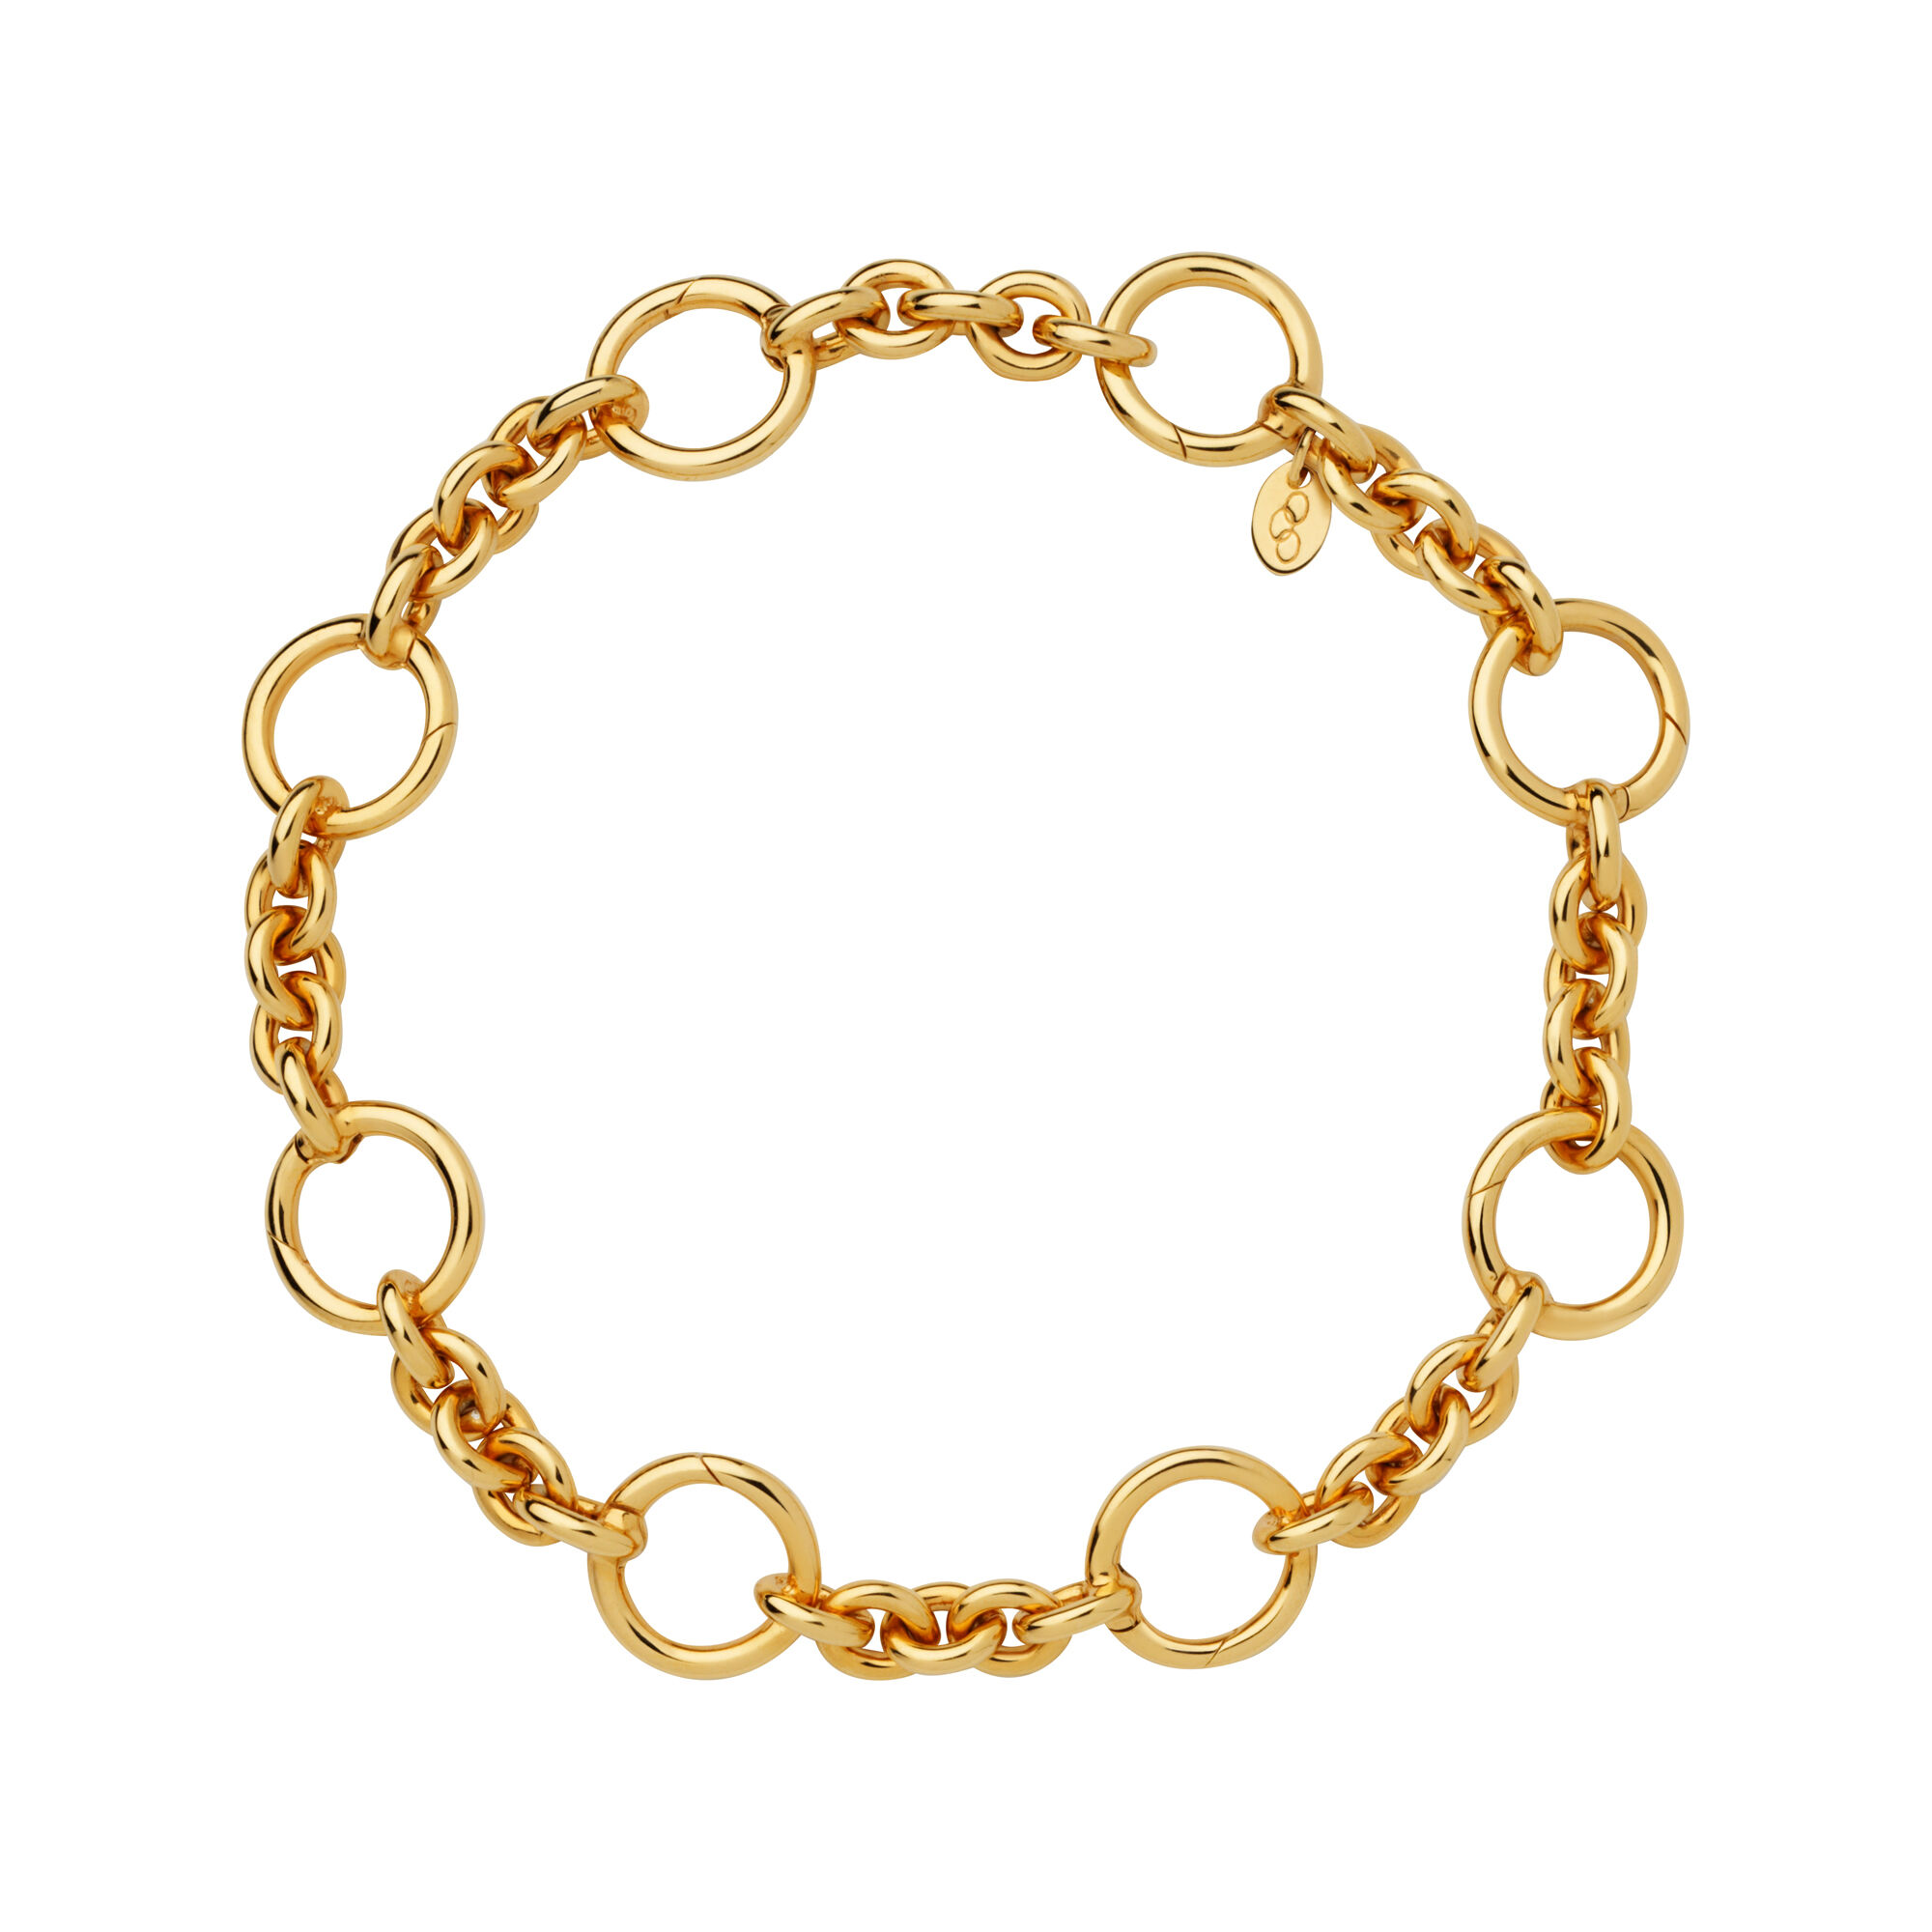 amulet gold carabiner bracelet bracelets yellow anklet pin and